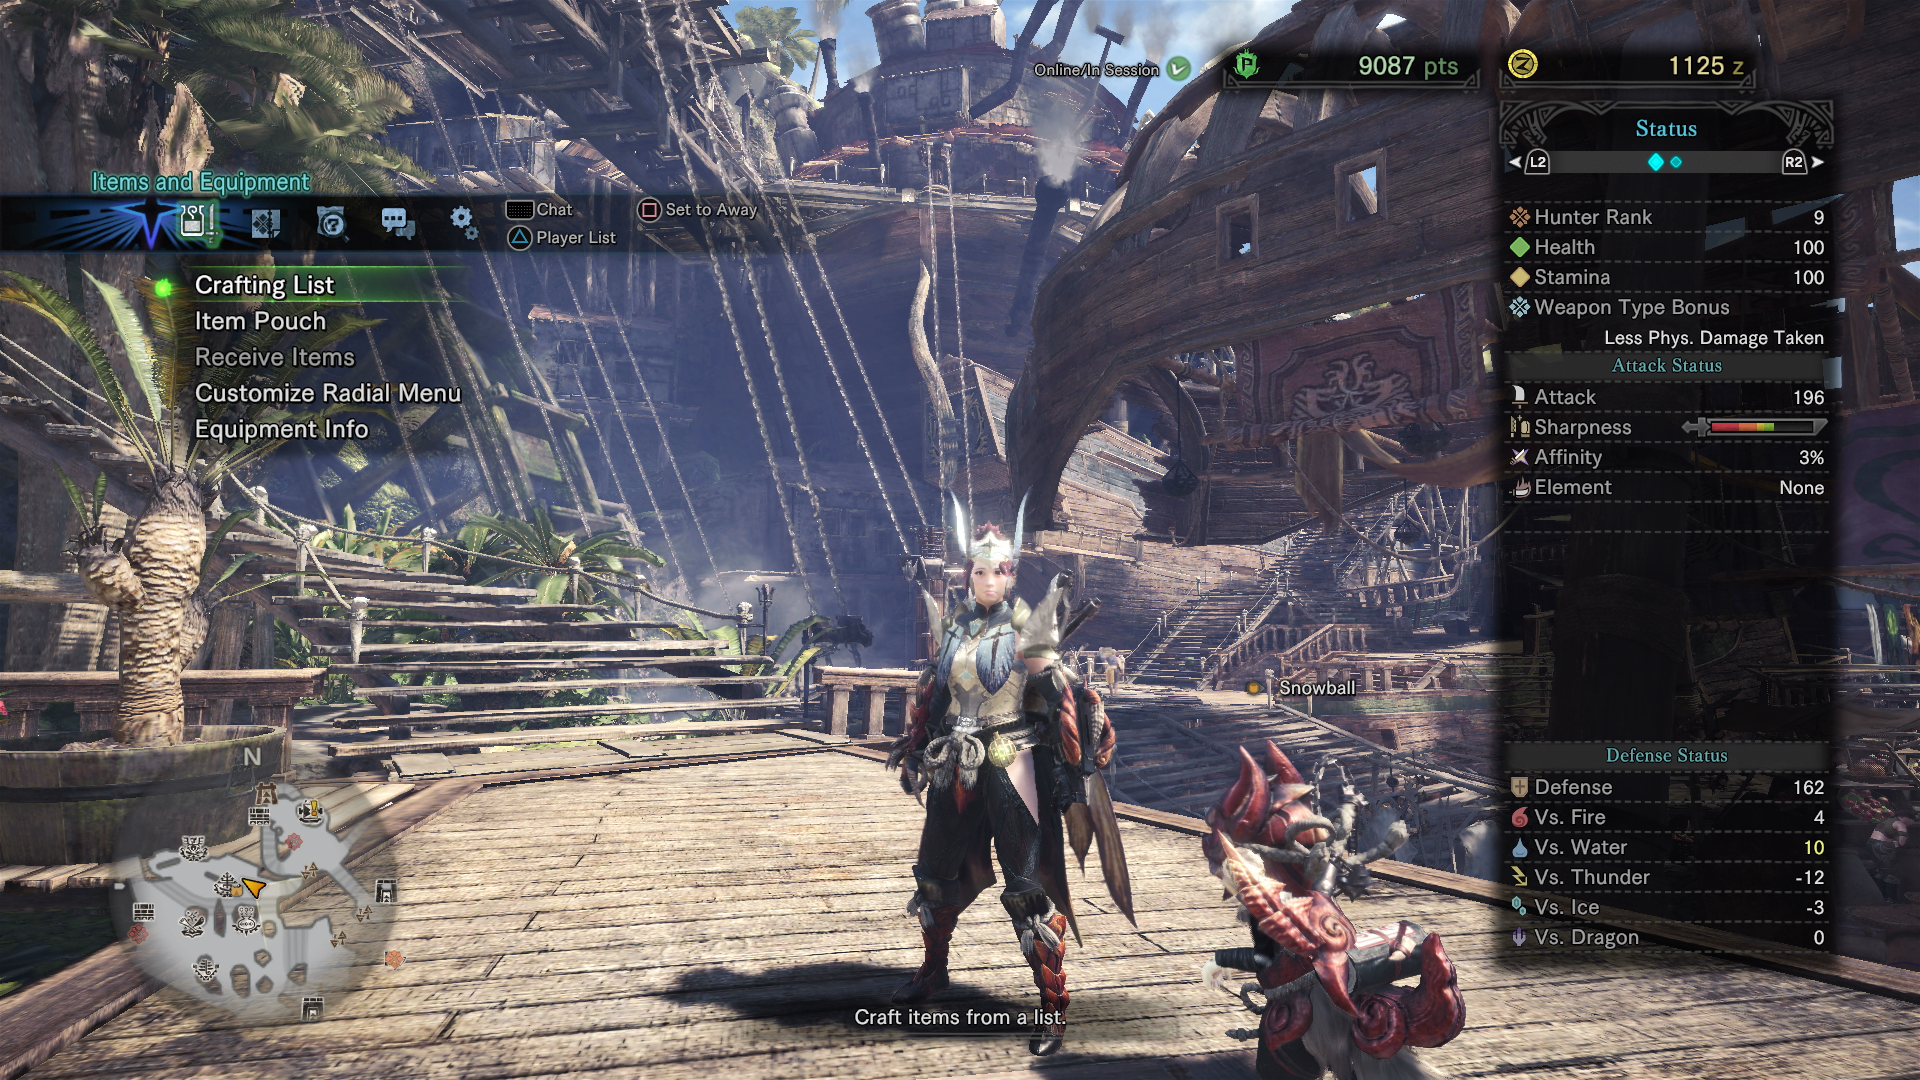 Monster Hunter World Crafting - How to Craft Items Quickly